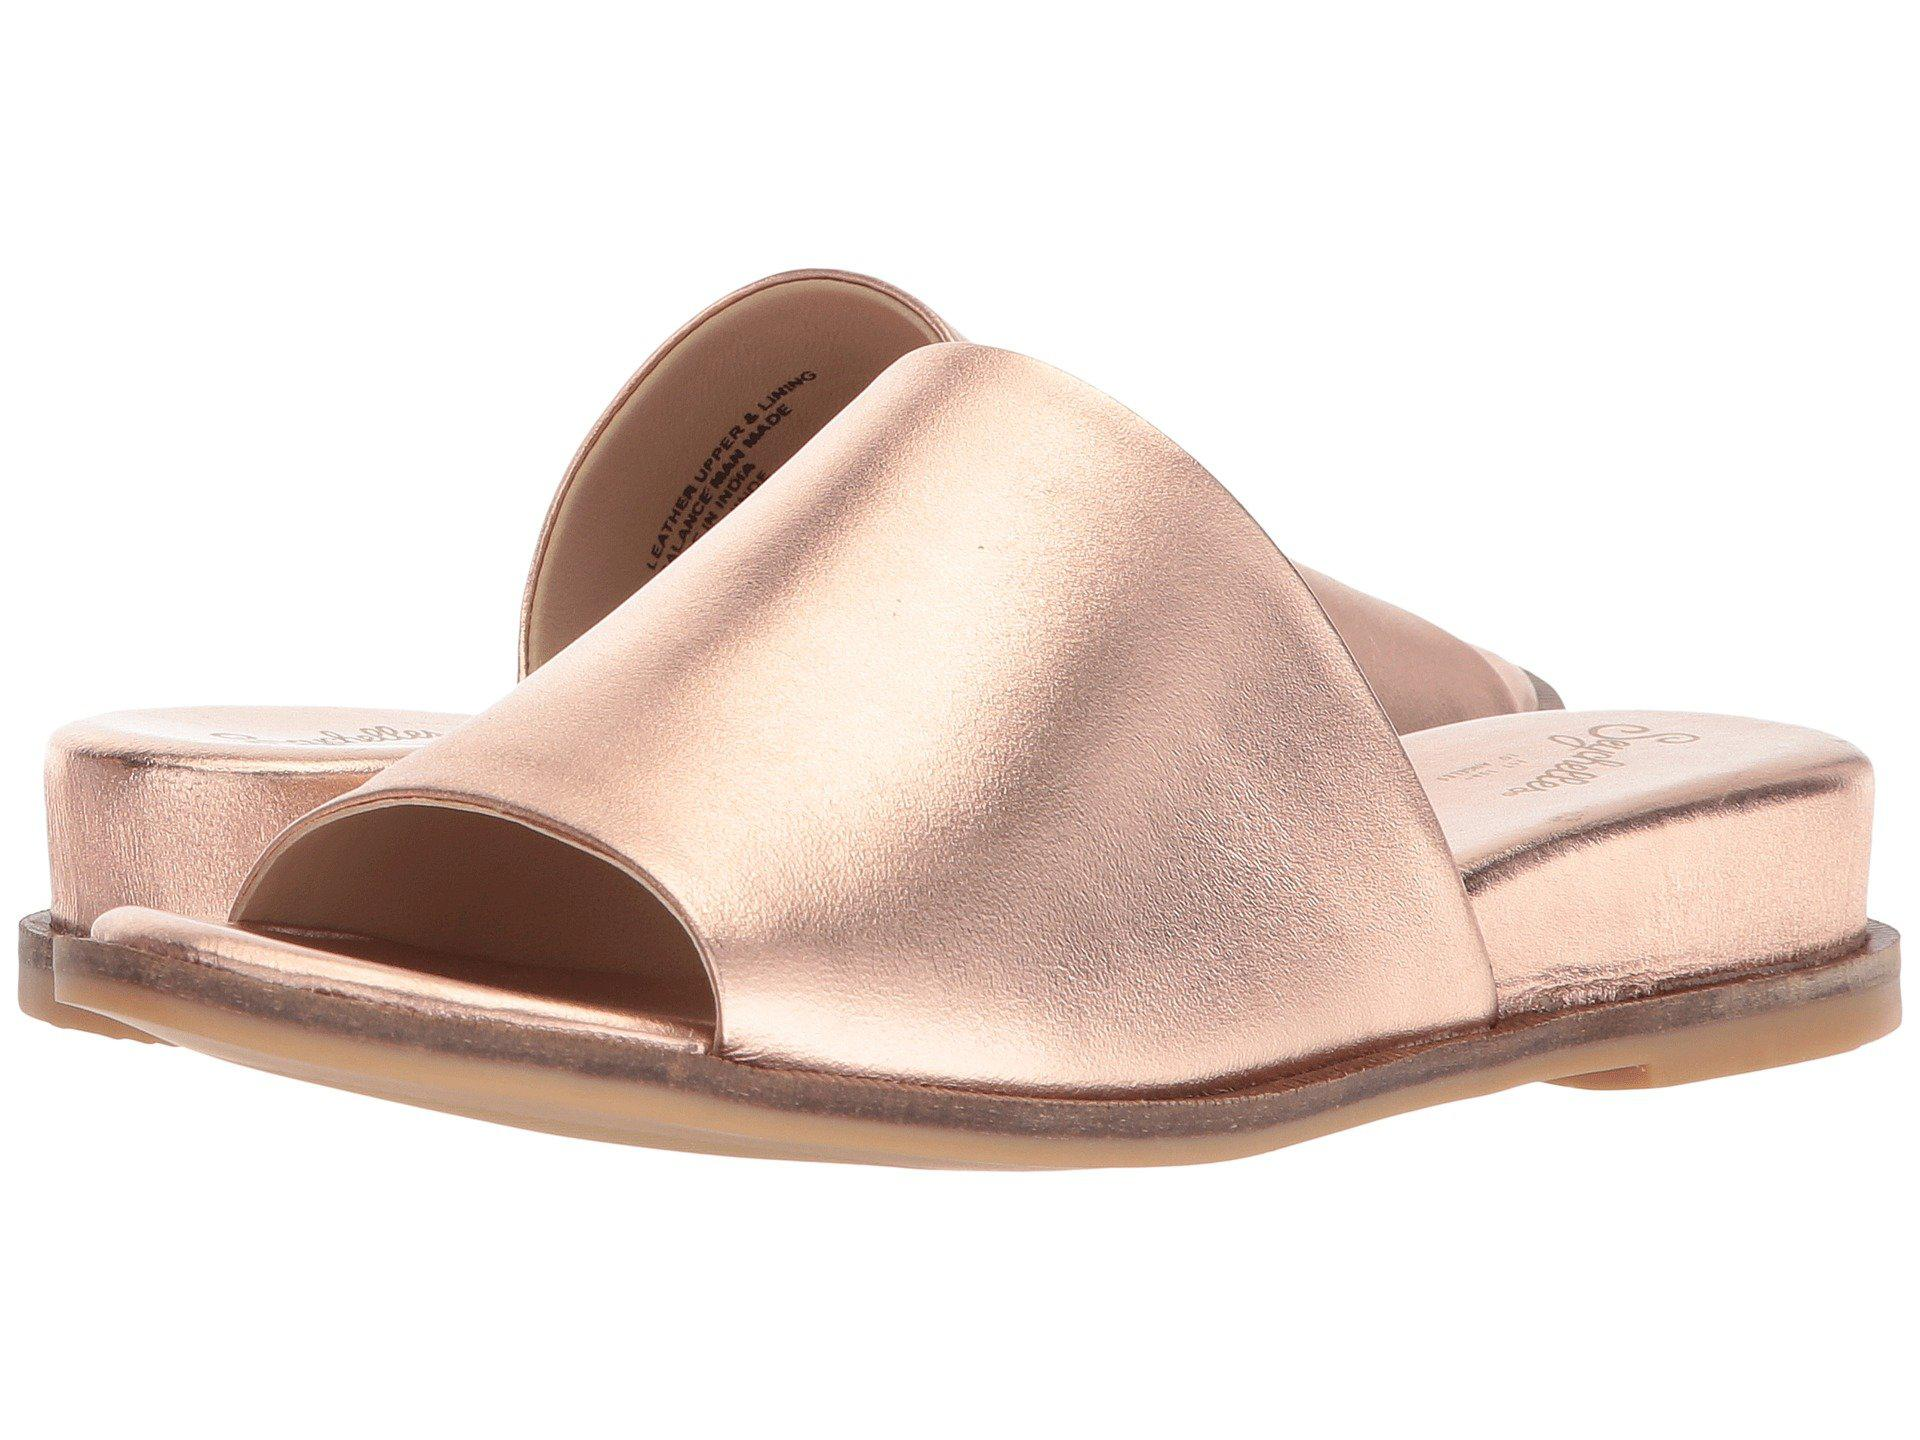 59dbf6cb3 Lyst - Seychelles Relaxing in Pink - Save 50%